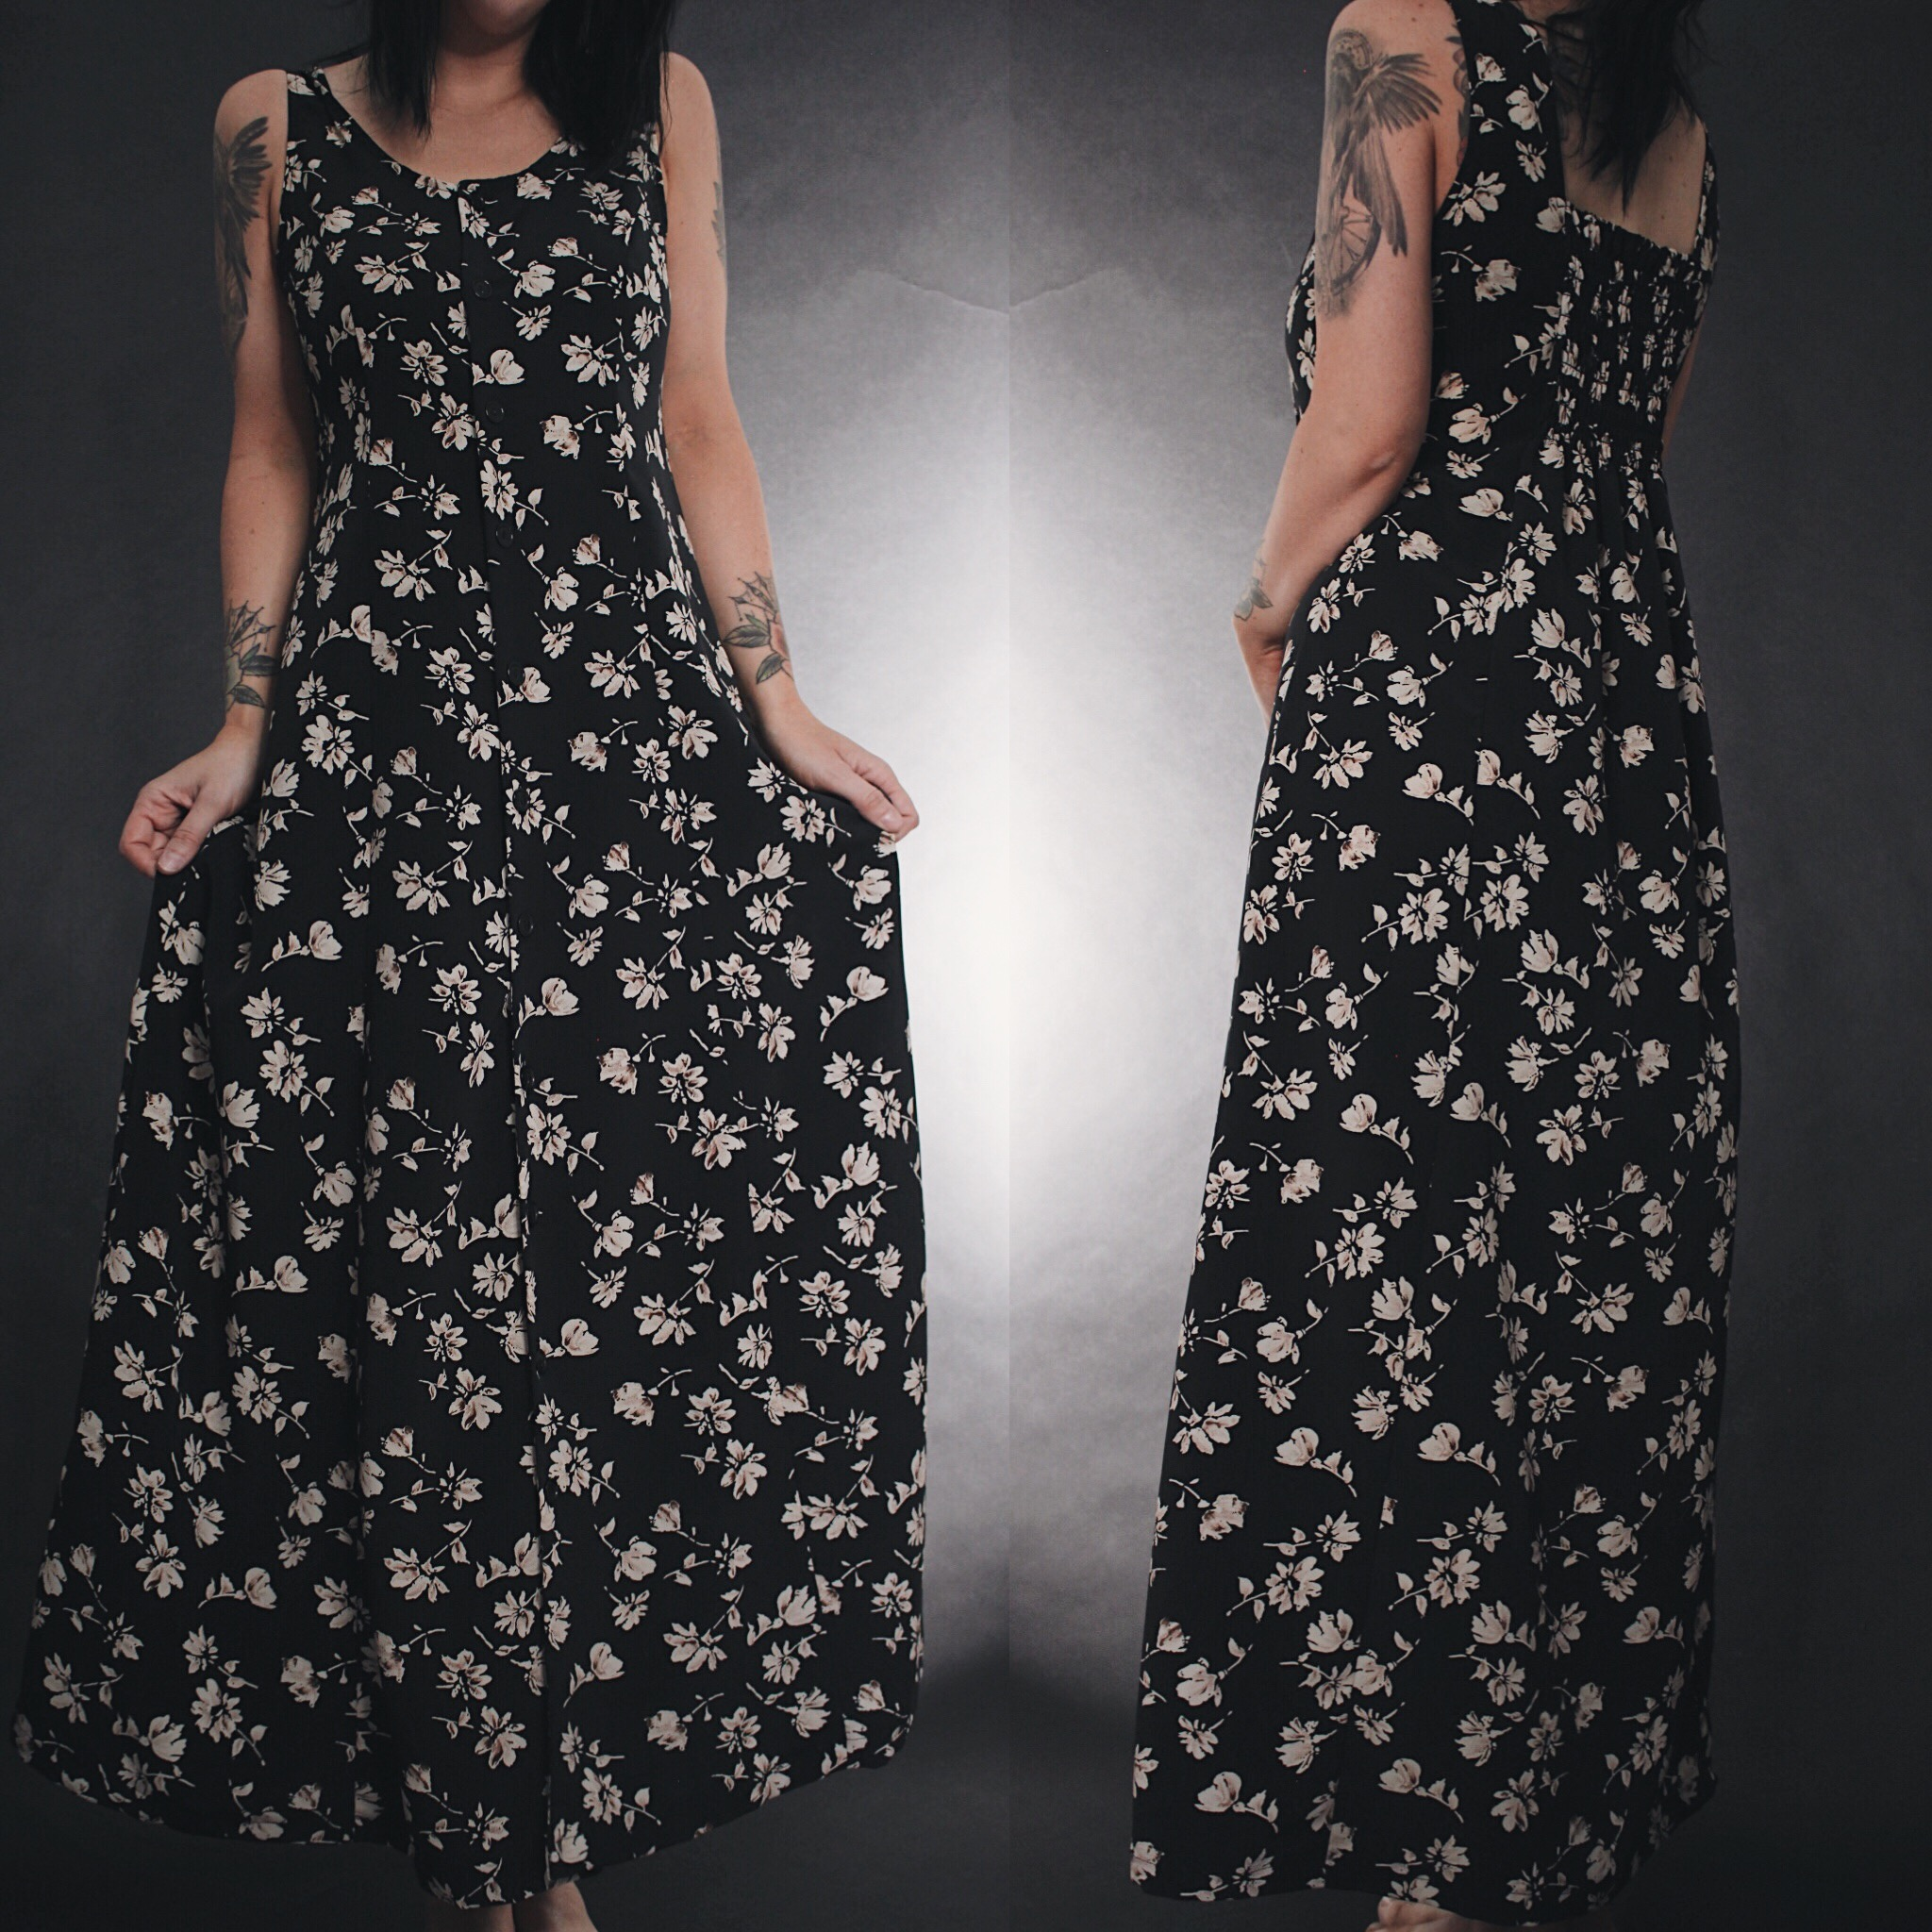 a2fa753c0e RESERVED FOR STAR - Vintage 90s Black   Tan Floral Maxi Dress · Last ...